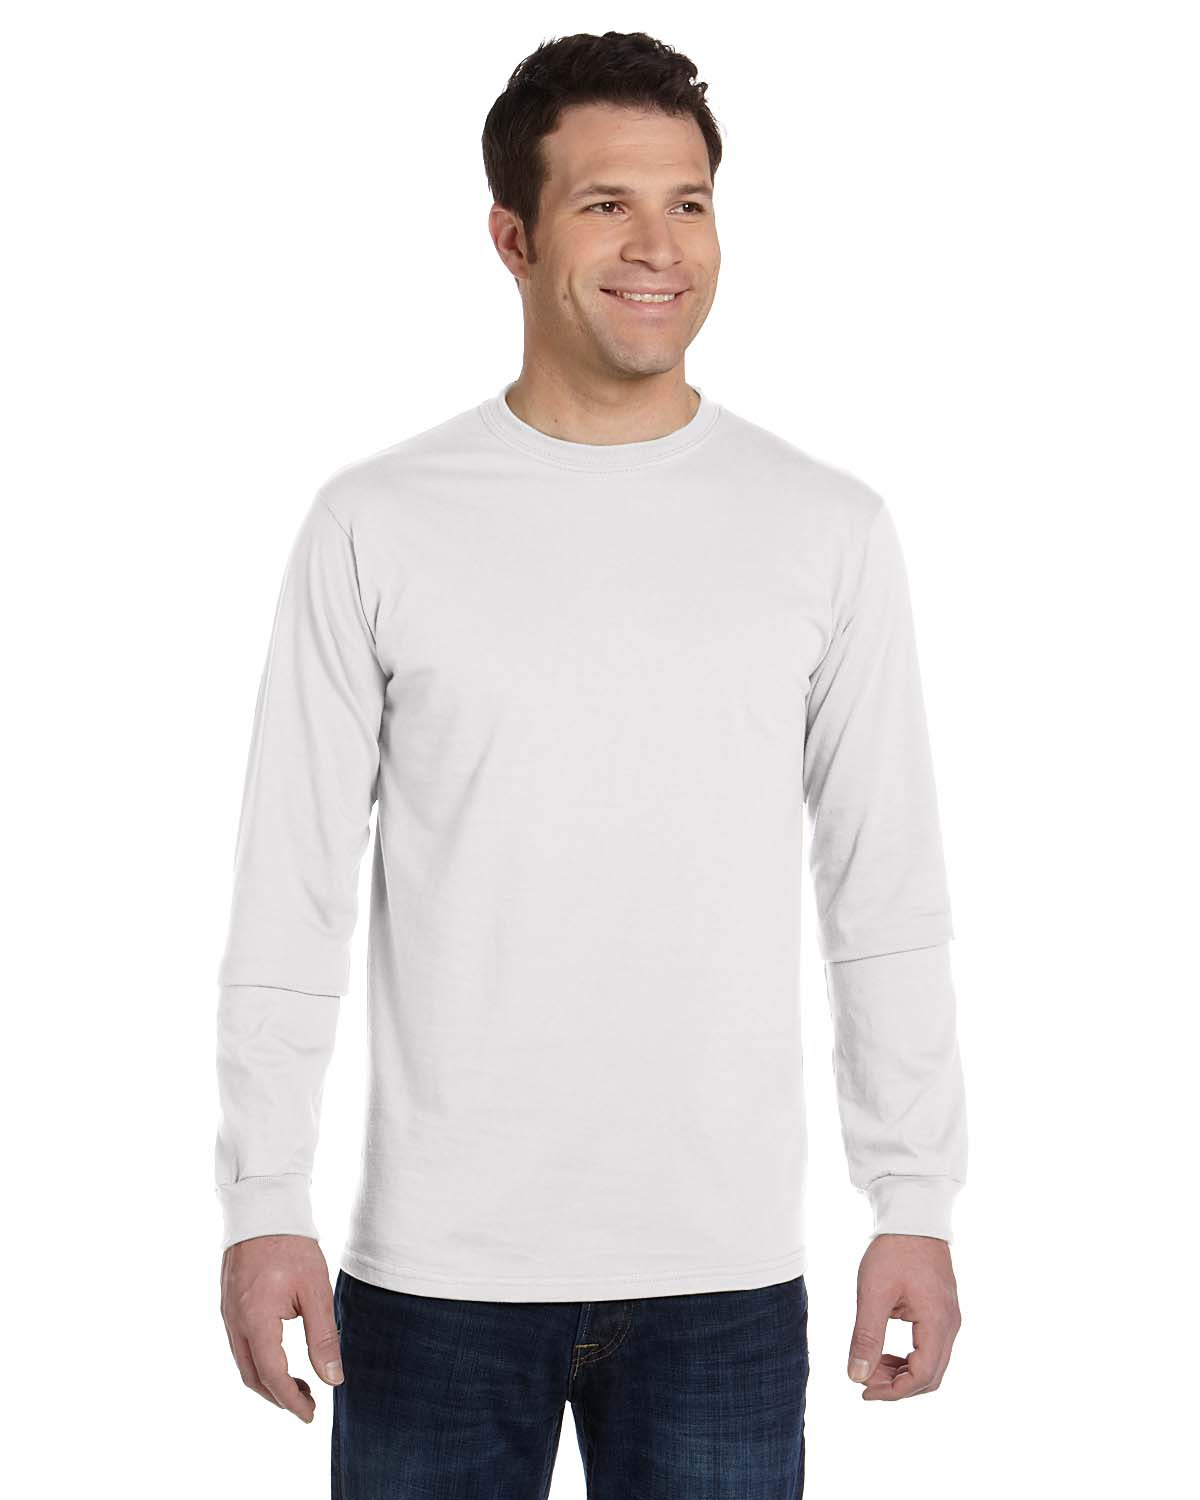 Men S Suits On Pinterest: Men's Organic Cotton Ring-Spun Long-Sleeve T-Shirt